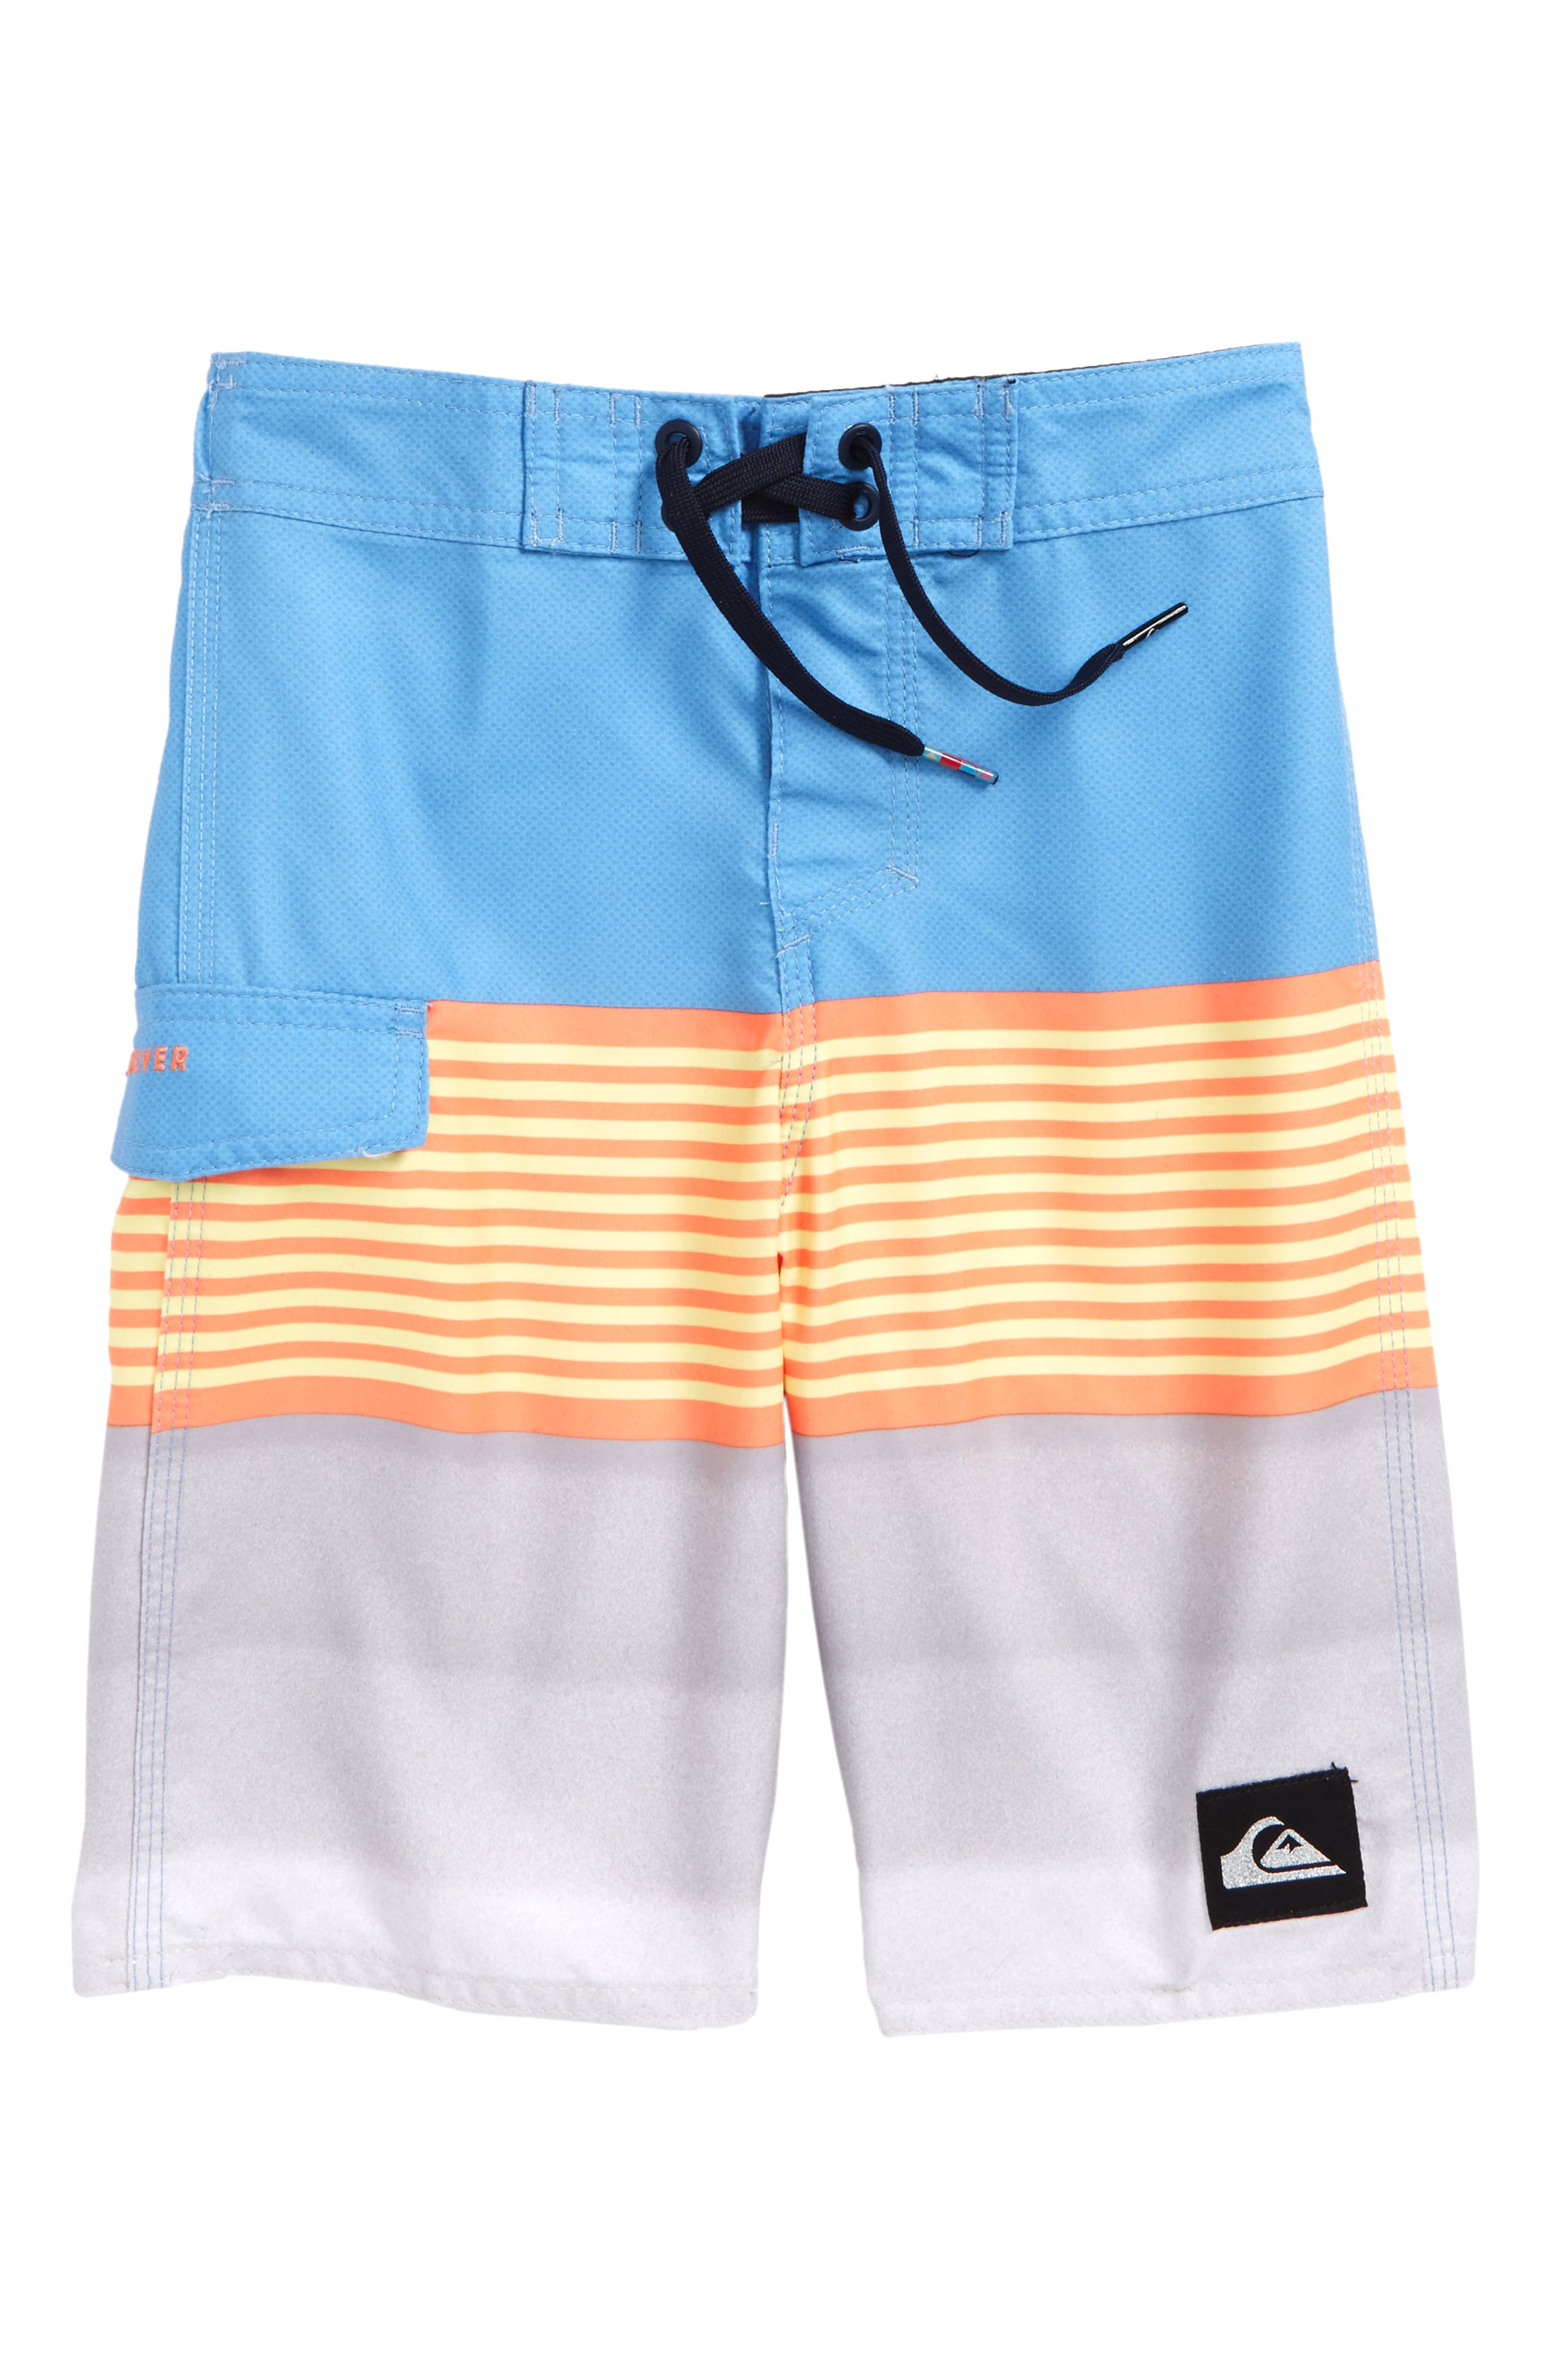 Quiksilver Division Board Shorts (Toddler Boys & Little Boys)